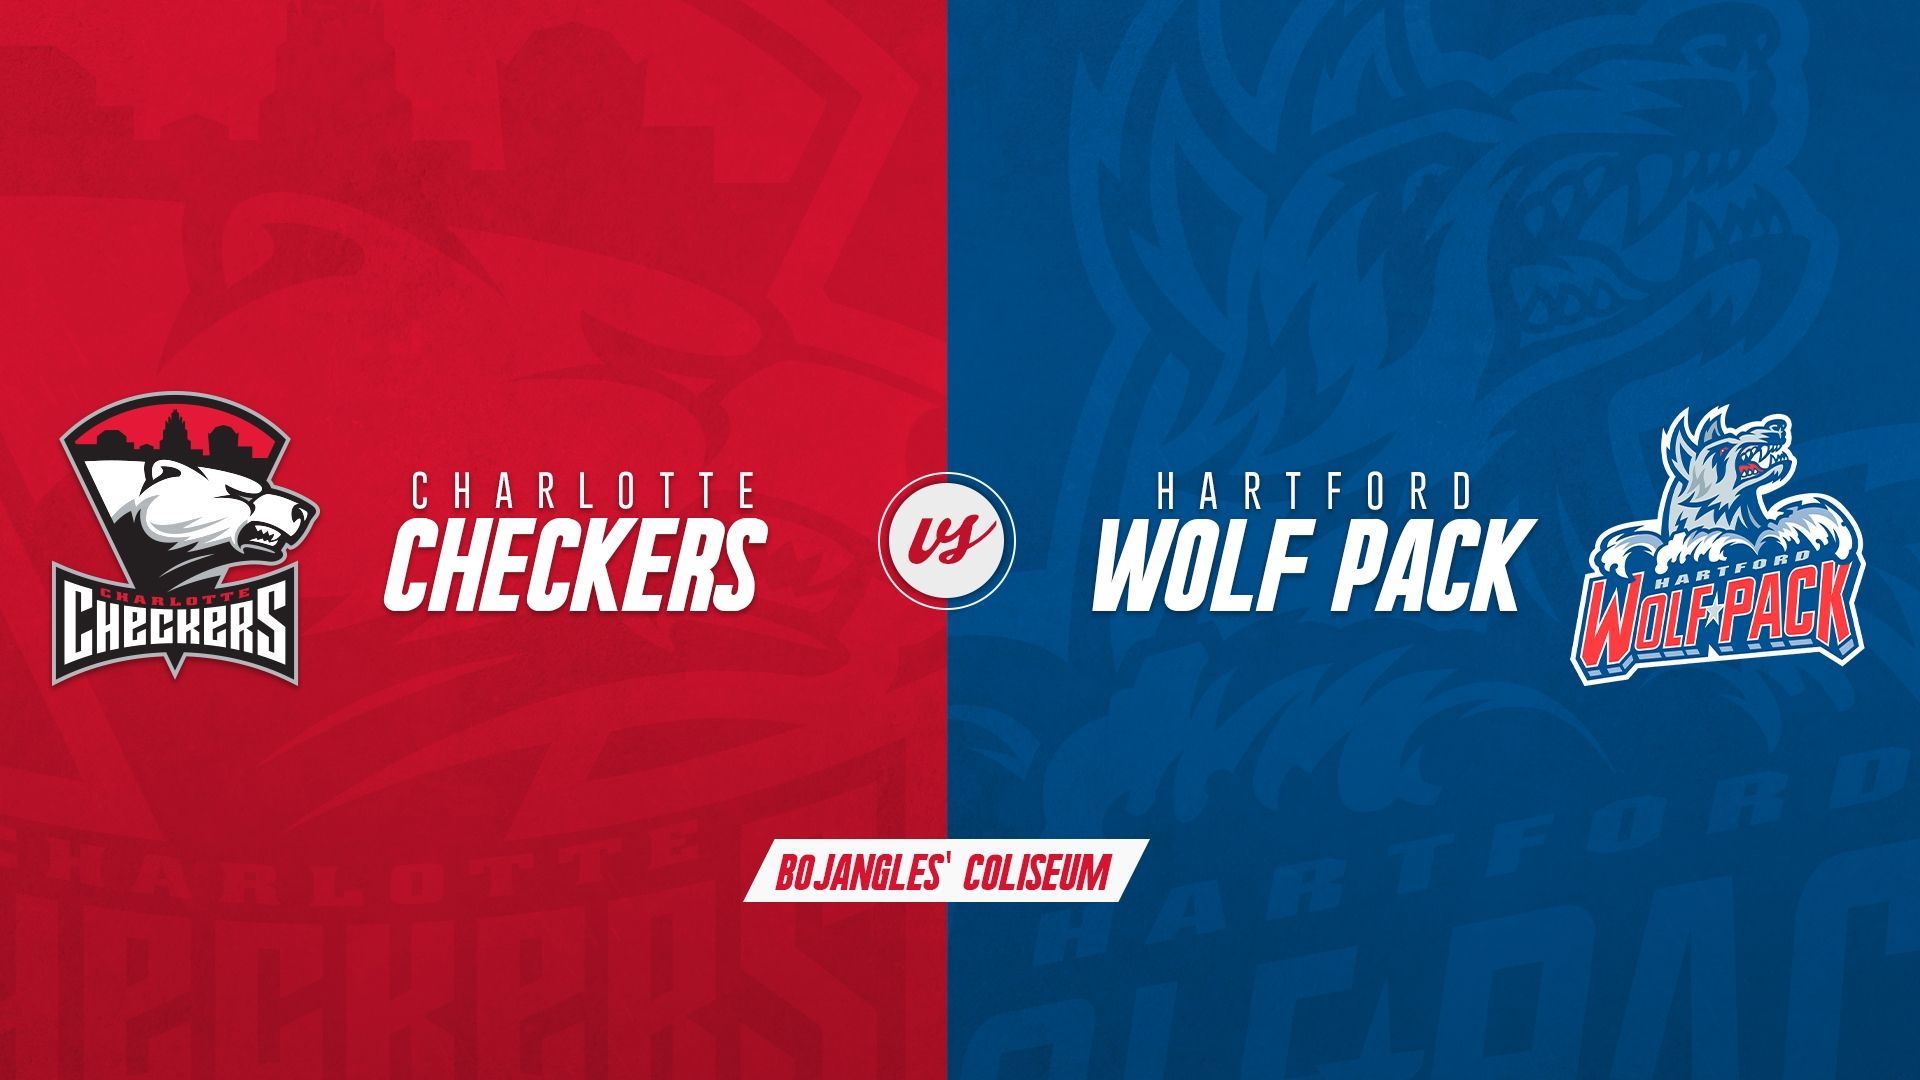 Charlotte Checkers vs. Hartford Wolf Pack